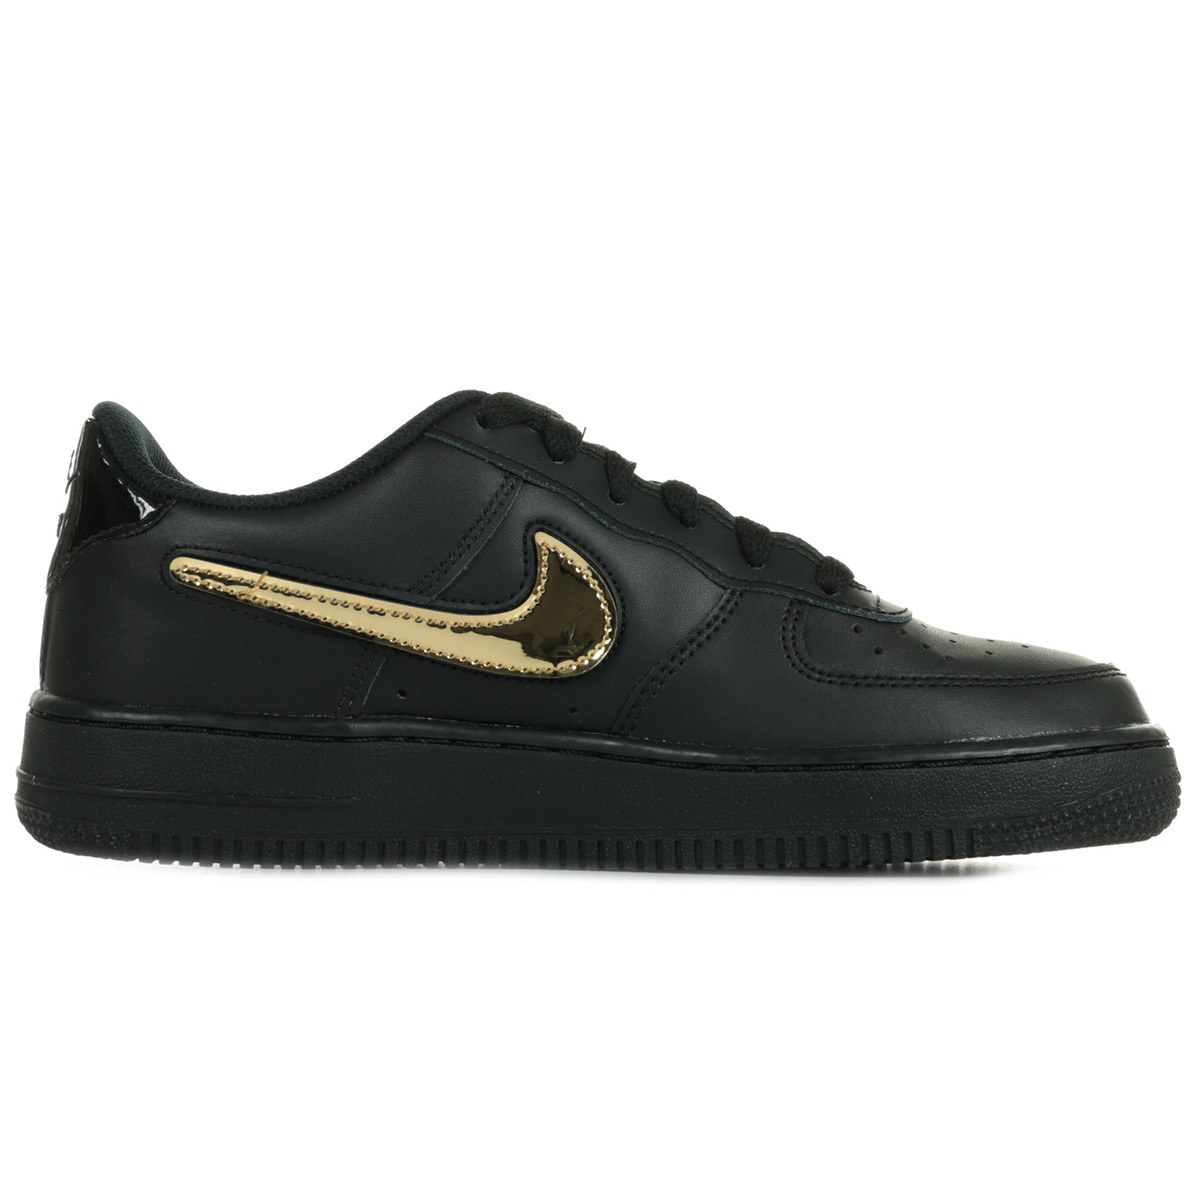 Nike Air Force 1 LV8 3 AR7446001, Baskets mode